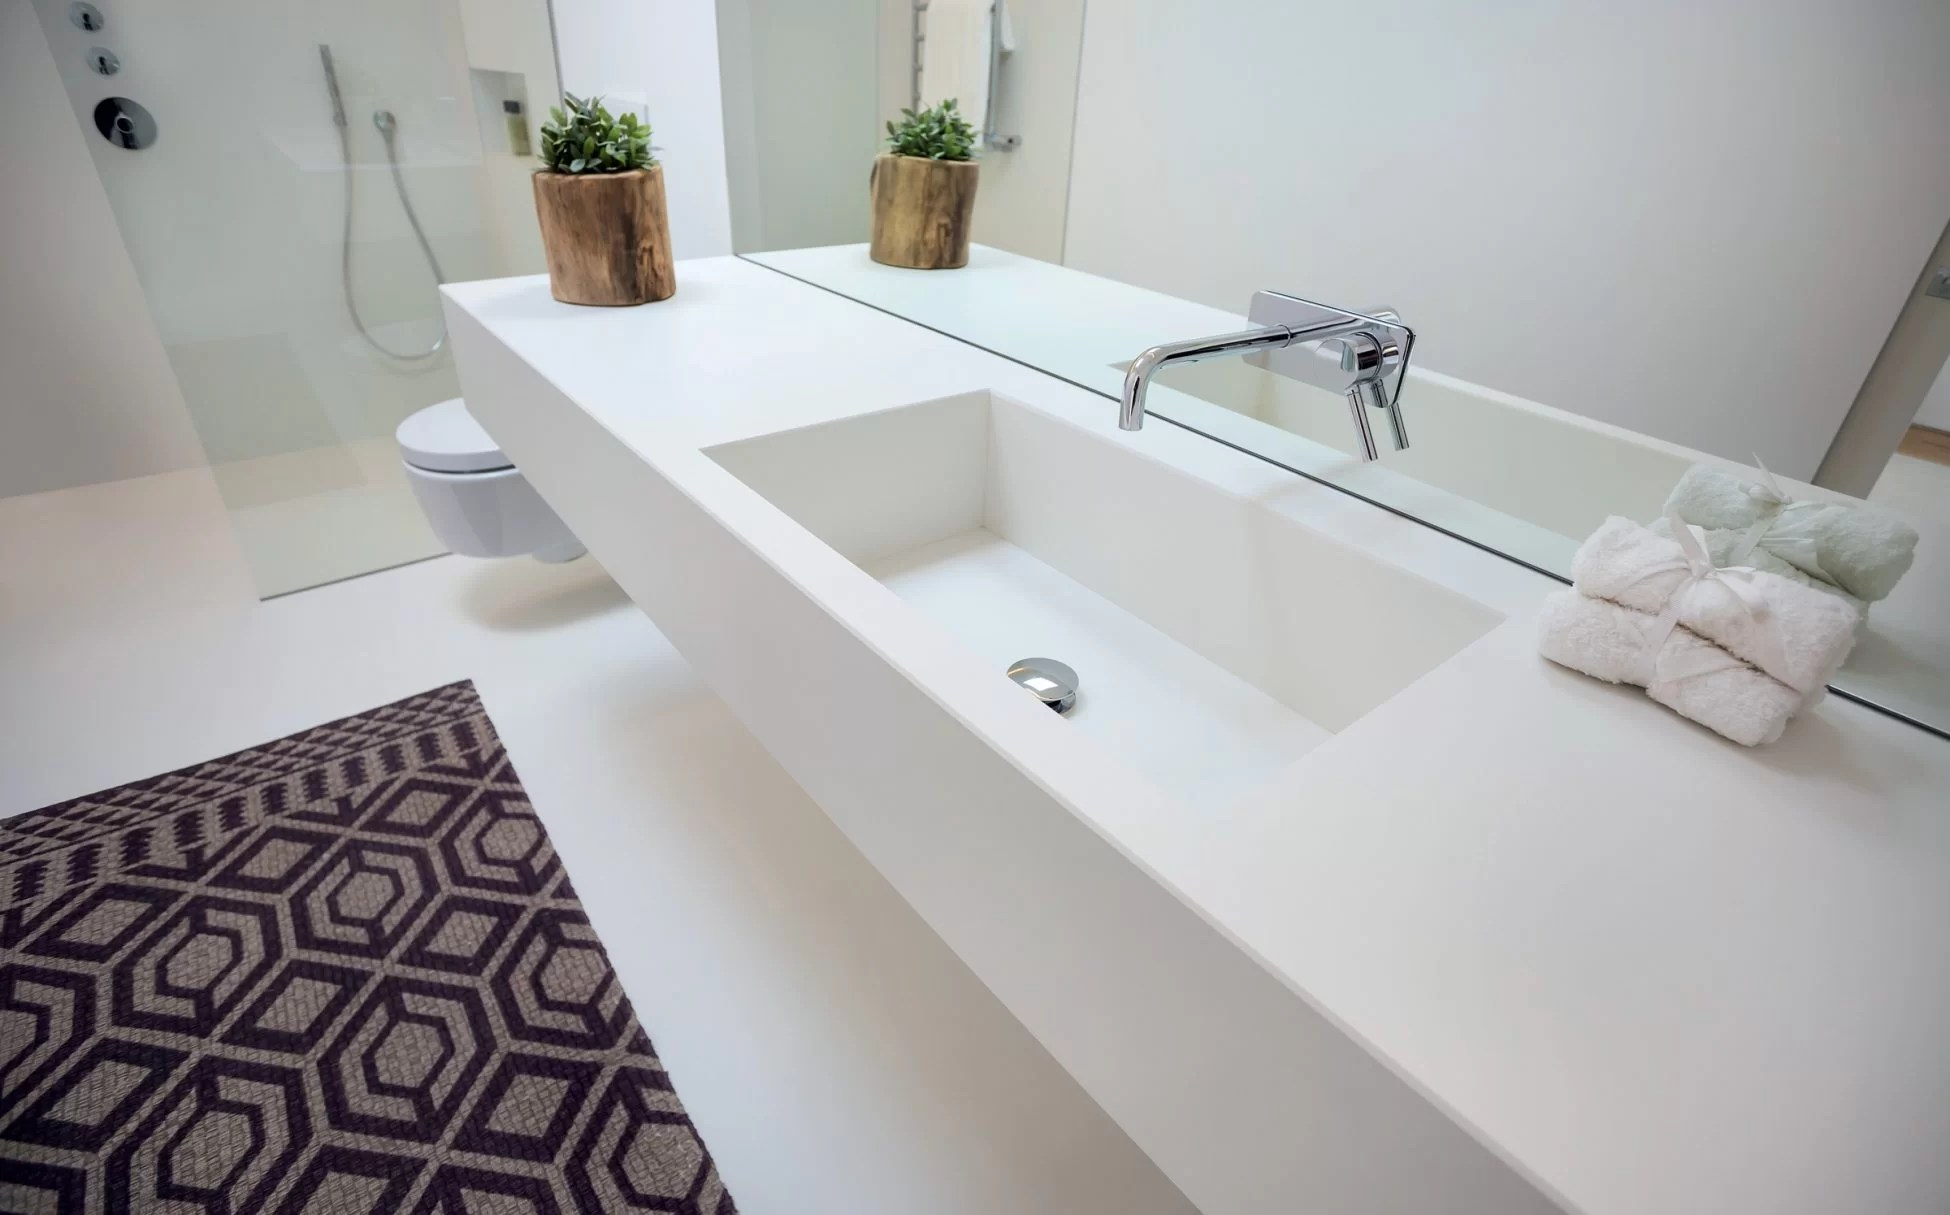 neolith-colorfeel-arctic-white-floating-vanity-countertop-silk-finish